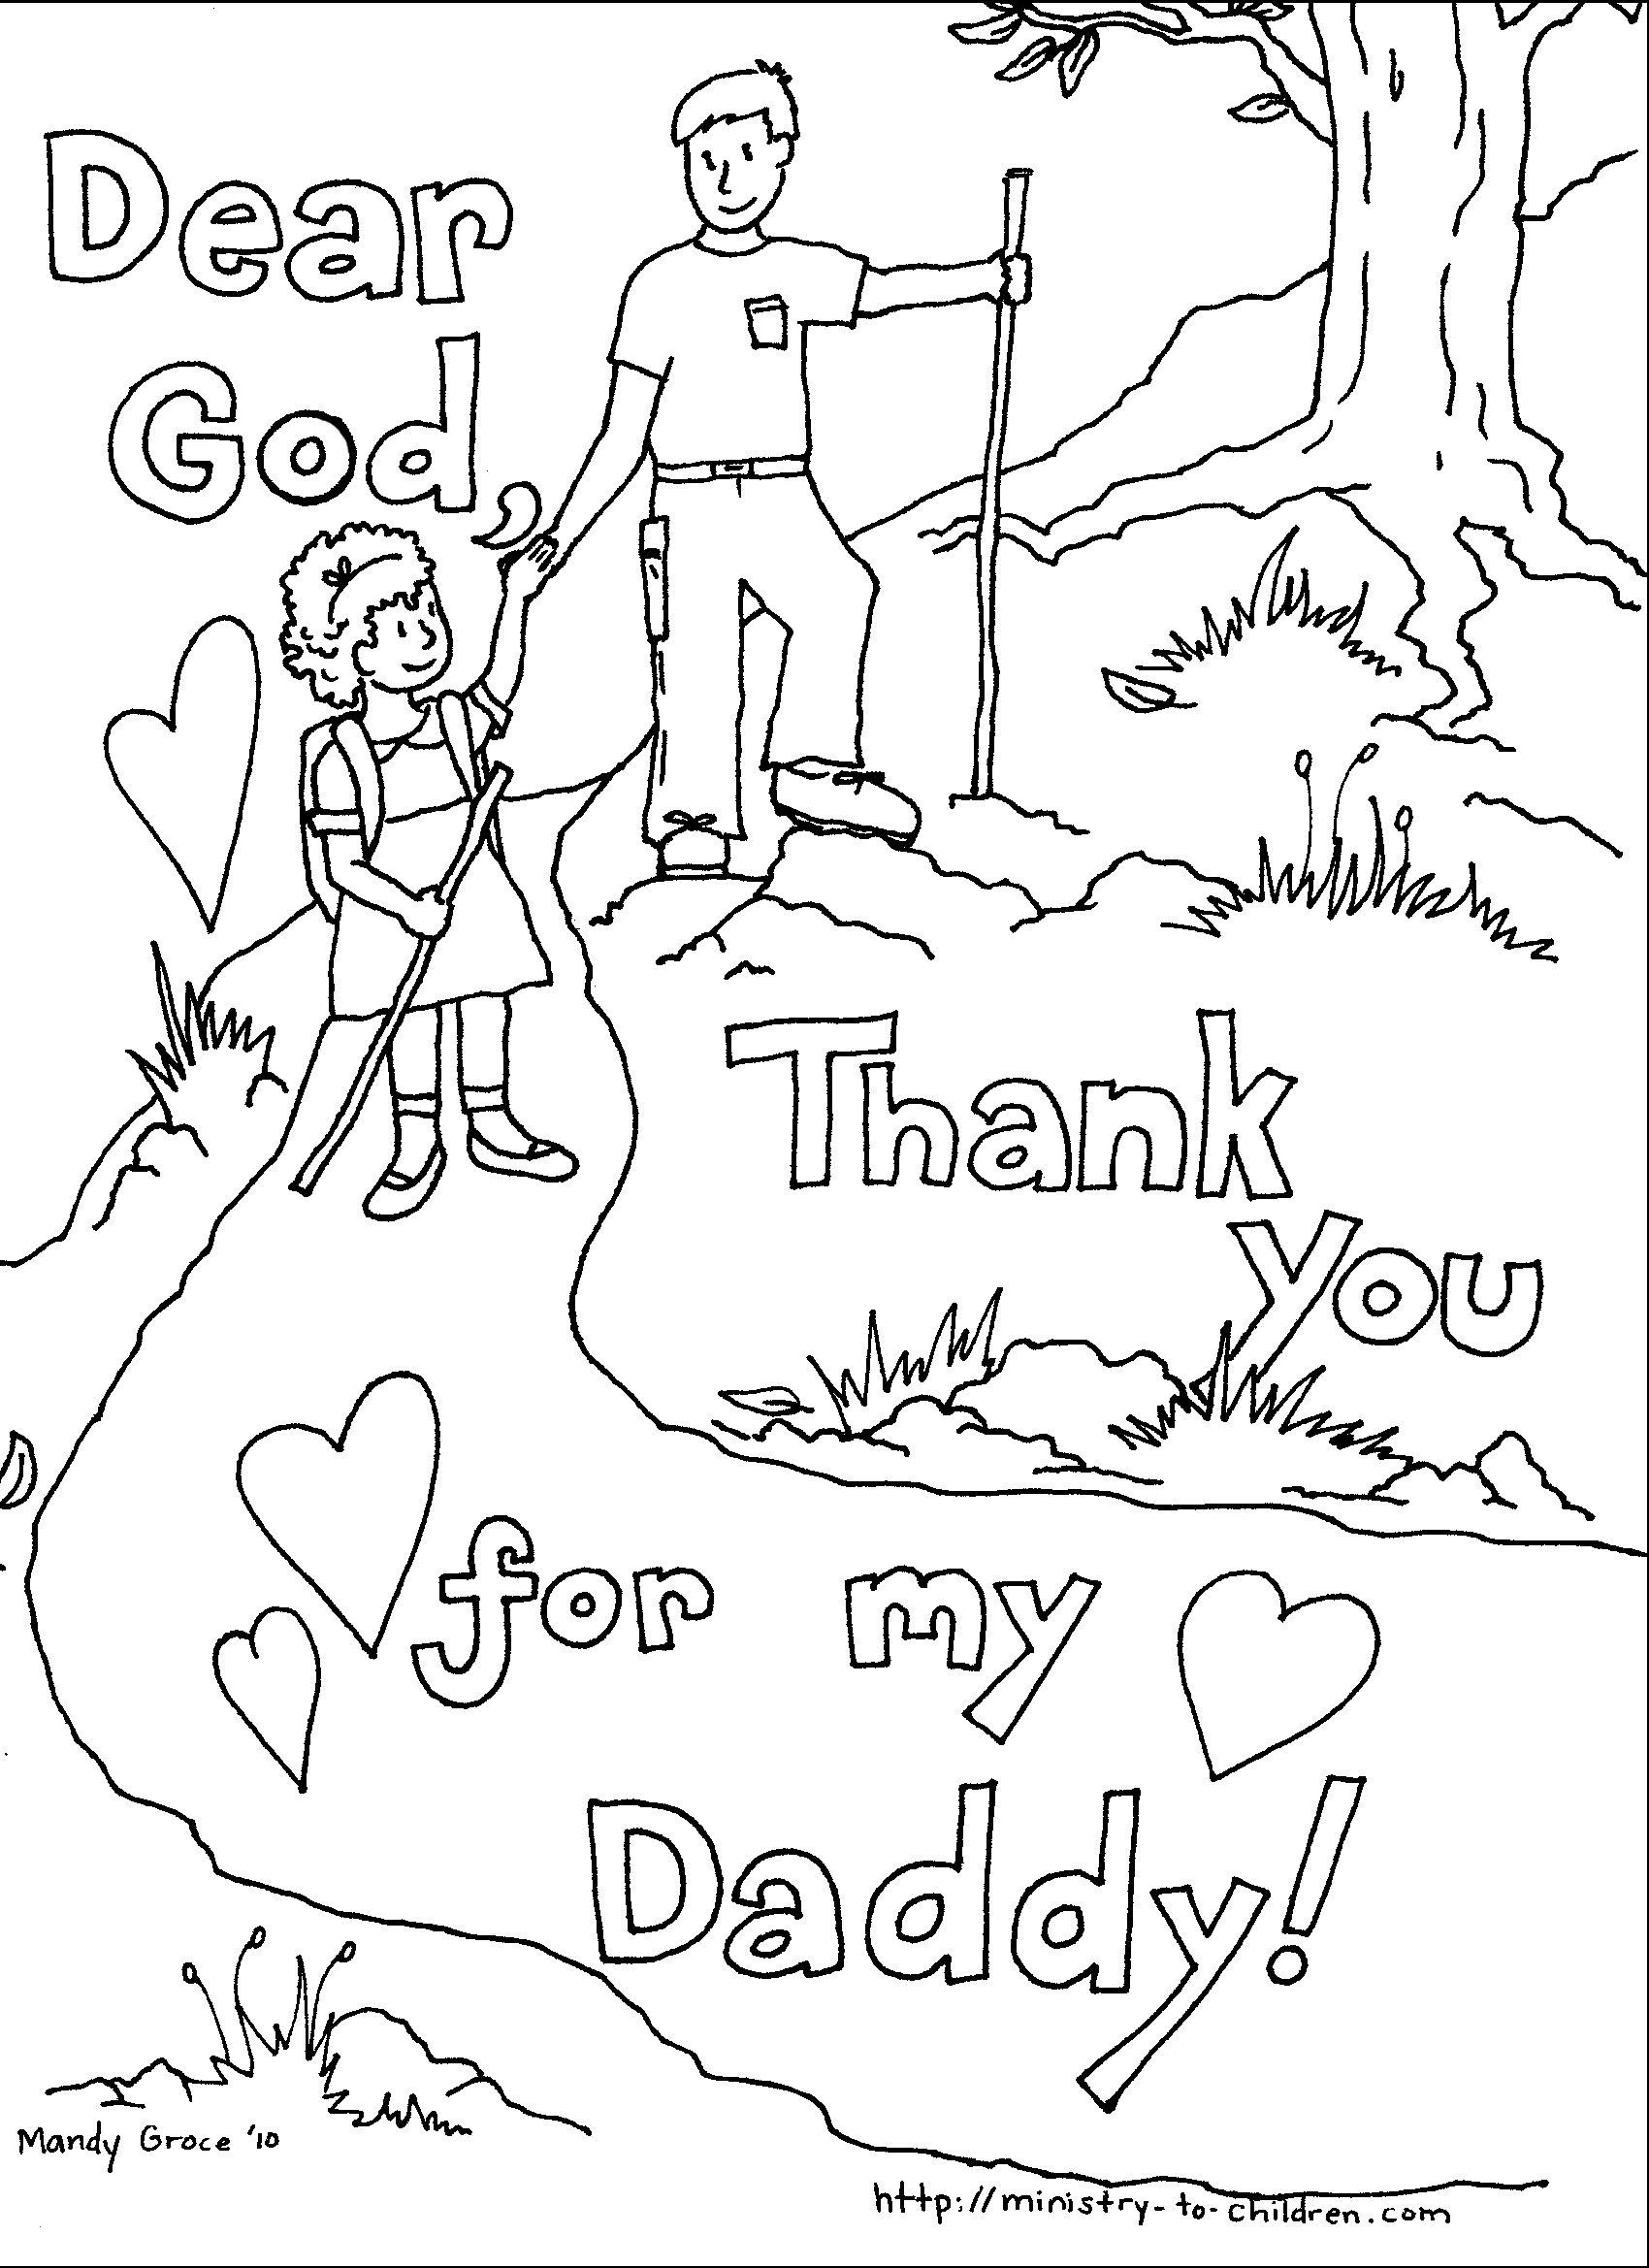 Sodom and Gomorrah Coloring Pages  to Print 6t - Save it to your computer